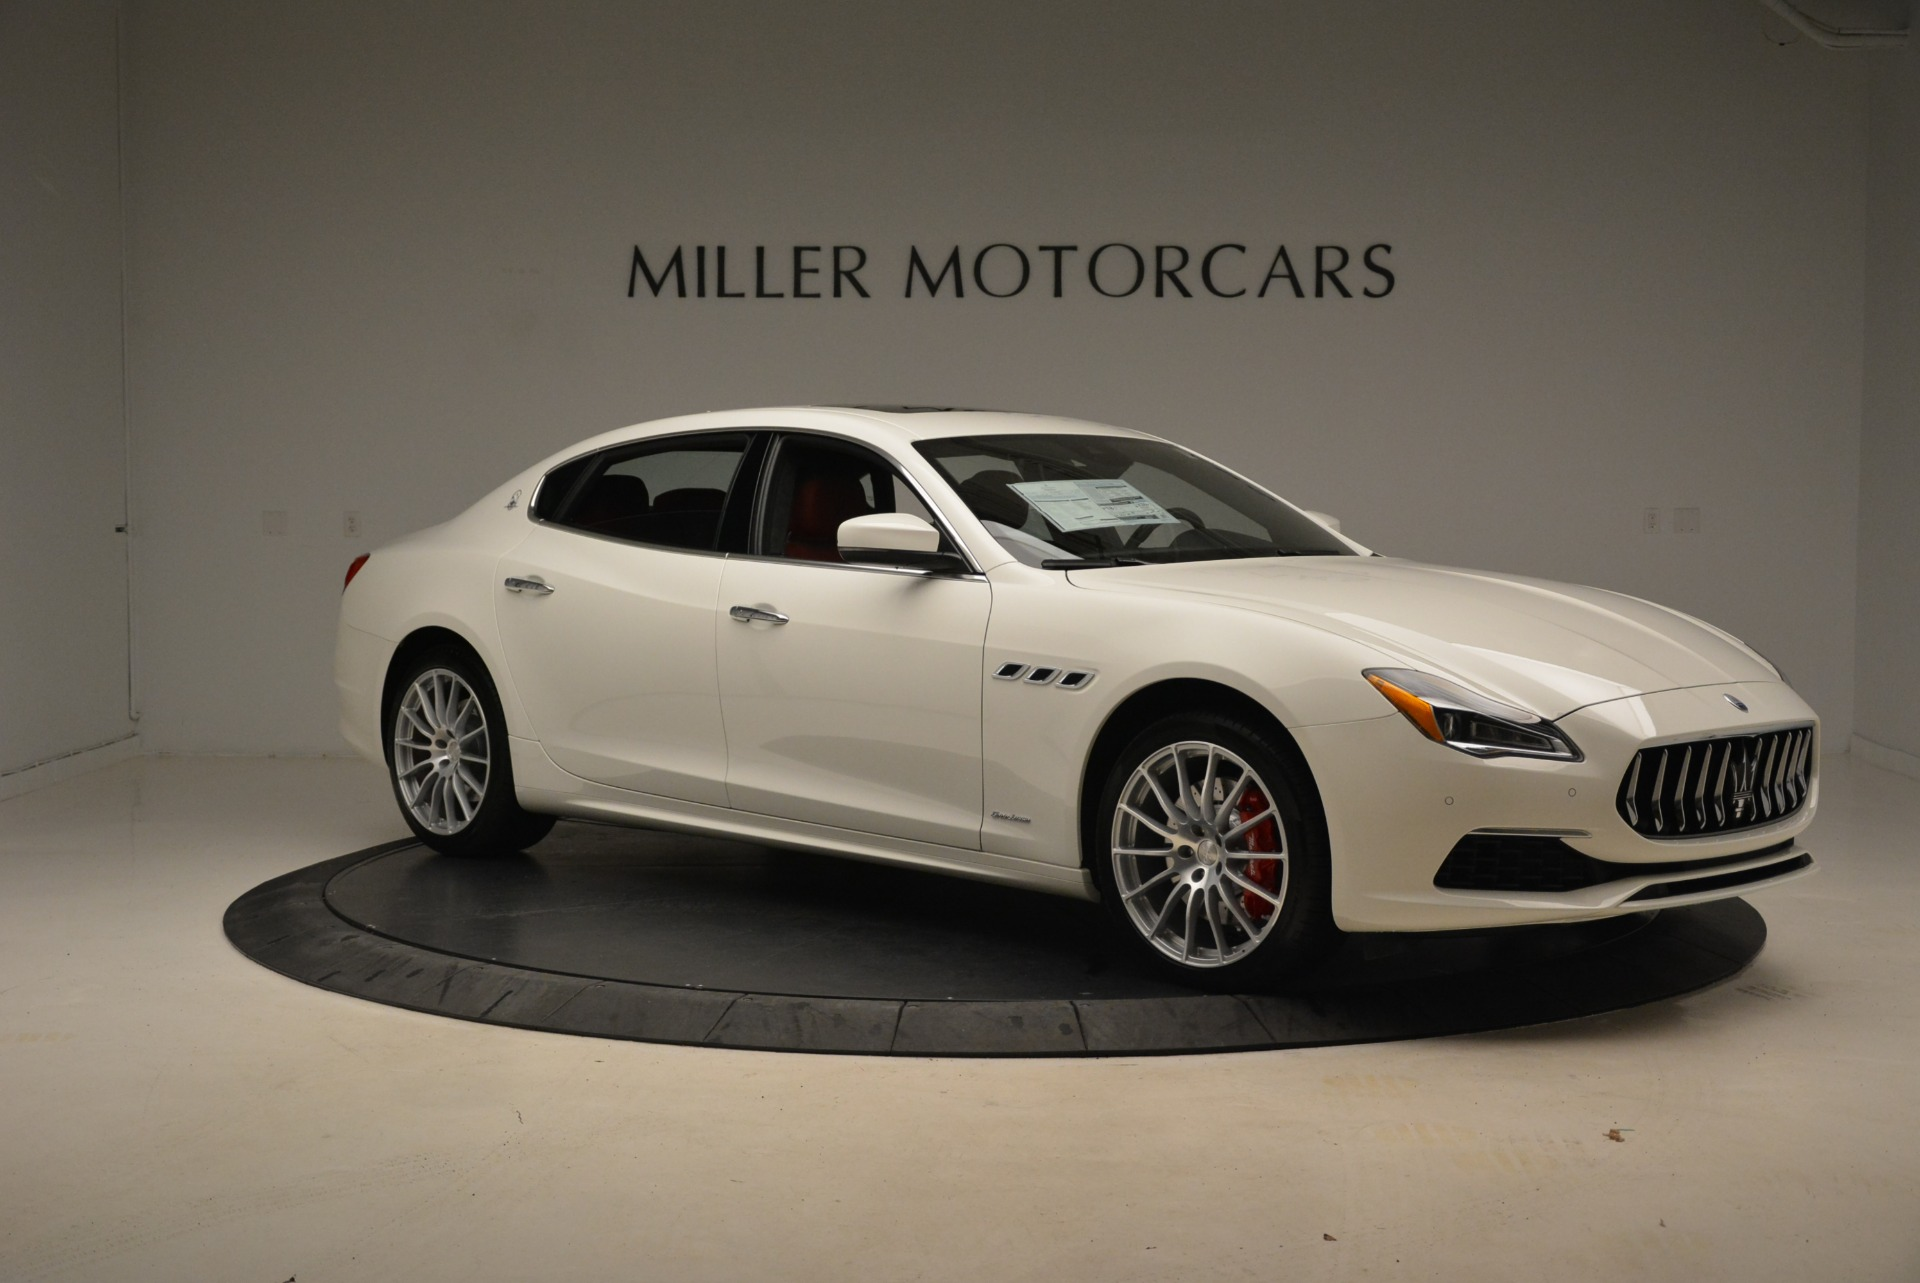 New 2018 Maserati Quattroporte S Q4 GranLusso For Sale In Westport, CT 2085_p14